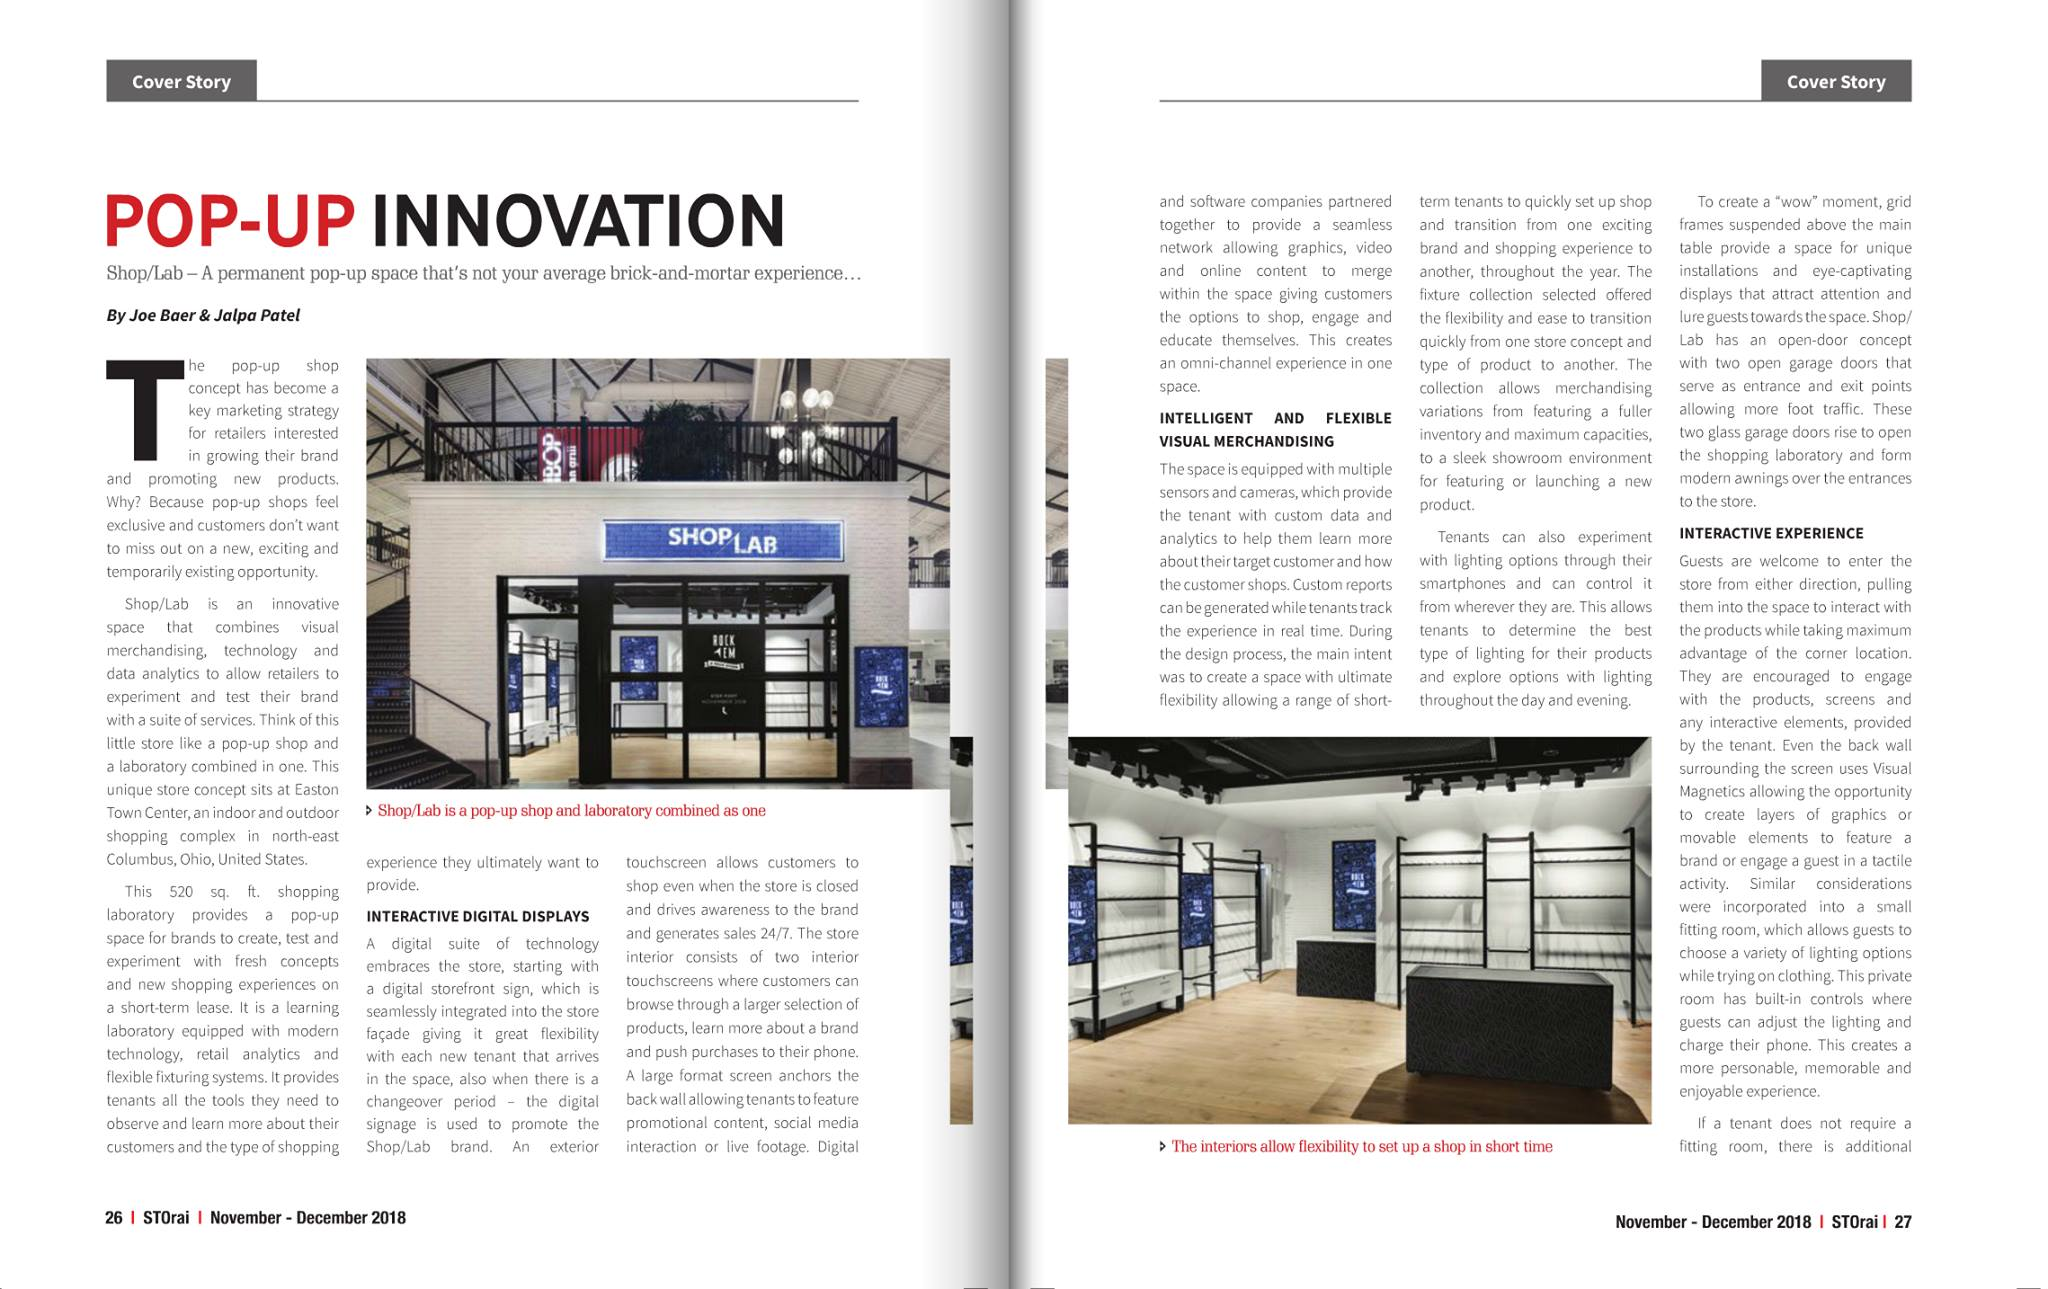 As seen in STOrai Magazine - Be sure to check out our latest article in the November/December 2018 issue of STOrai Magazine from the Retail Association of India.Pop-Up Innovation written by ZenGenius, Inc.'s very own CEO/Creative Director, Joe Baer and Senior Visual Merchandiser and Interior Architect, Jalpa Patel.